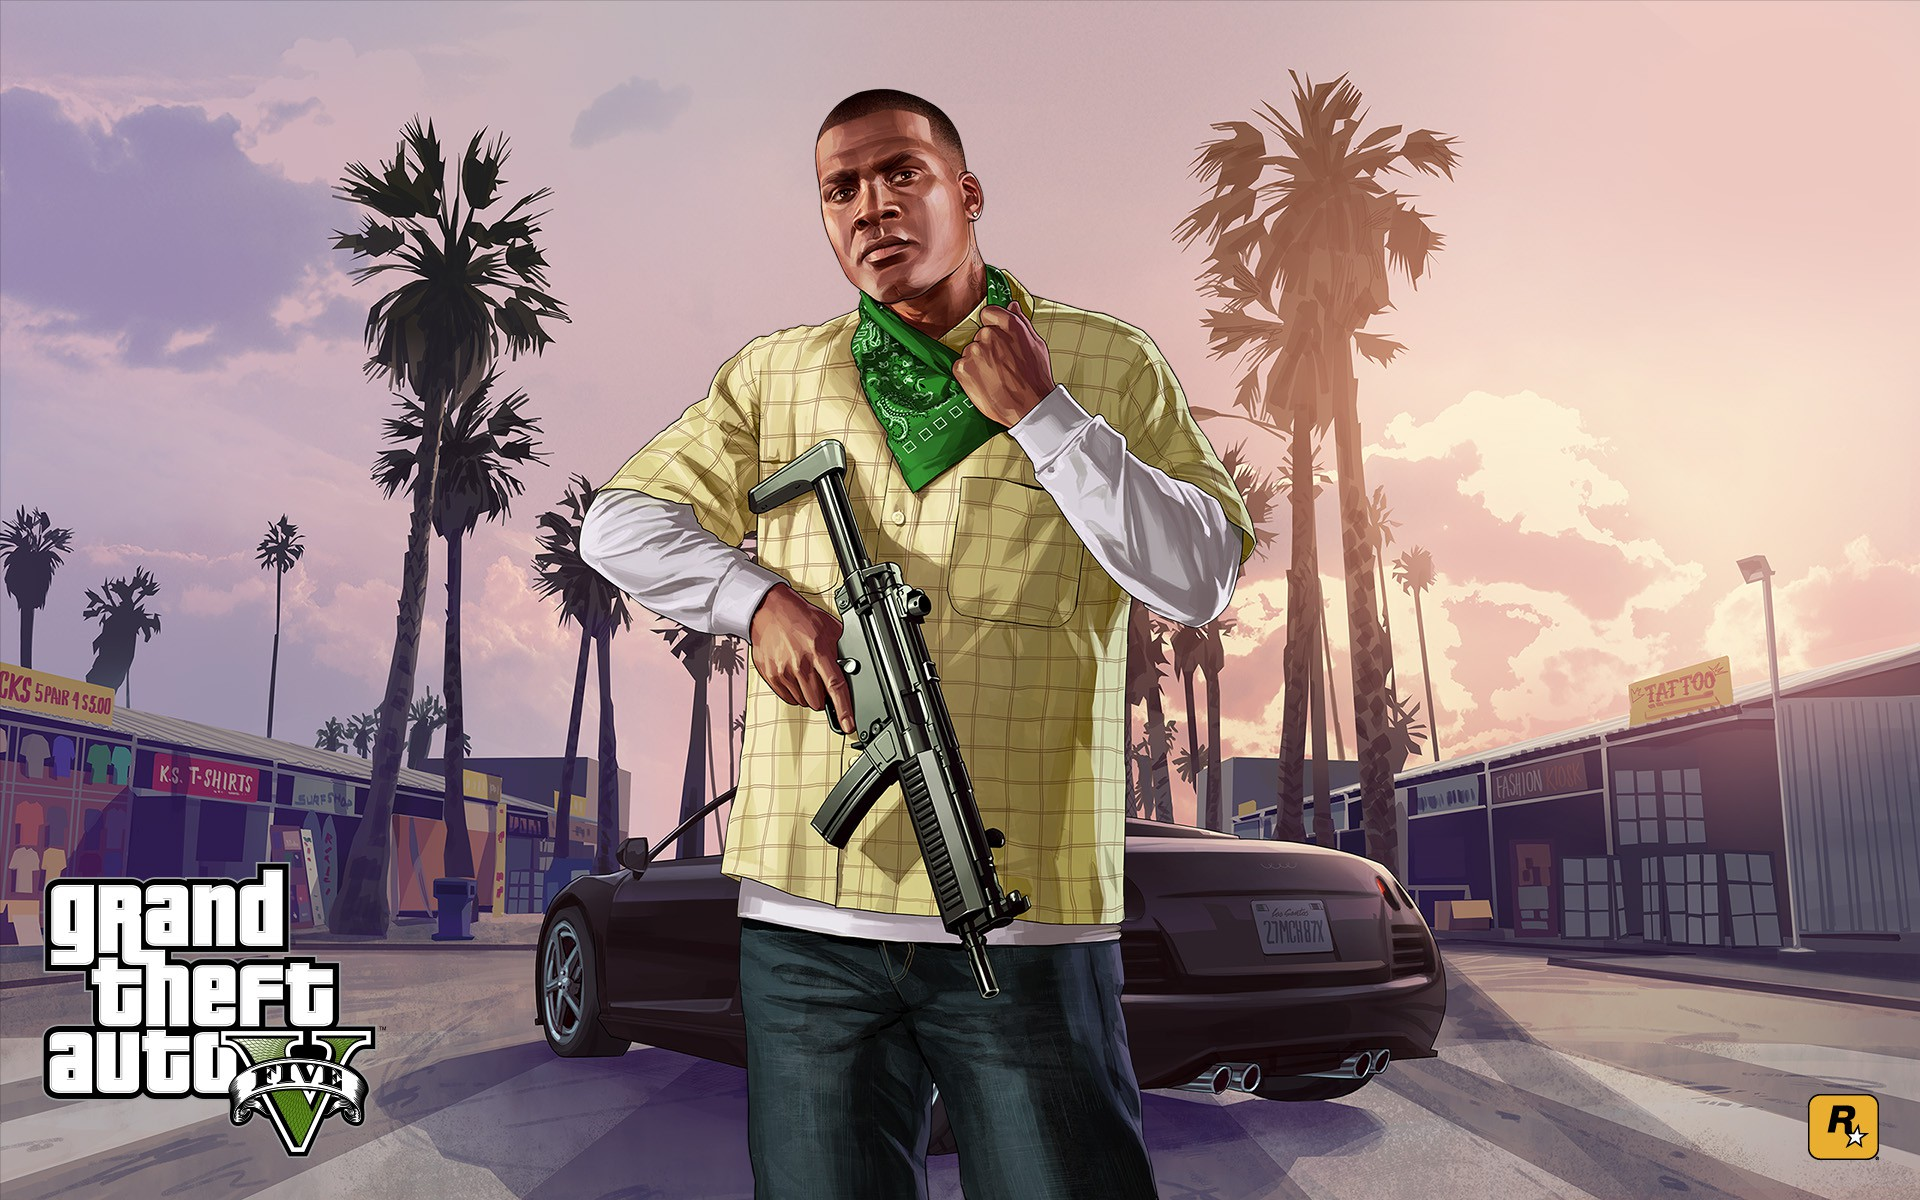 gta5-artwork-46-hd.jpg